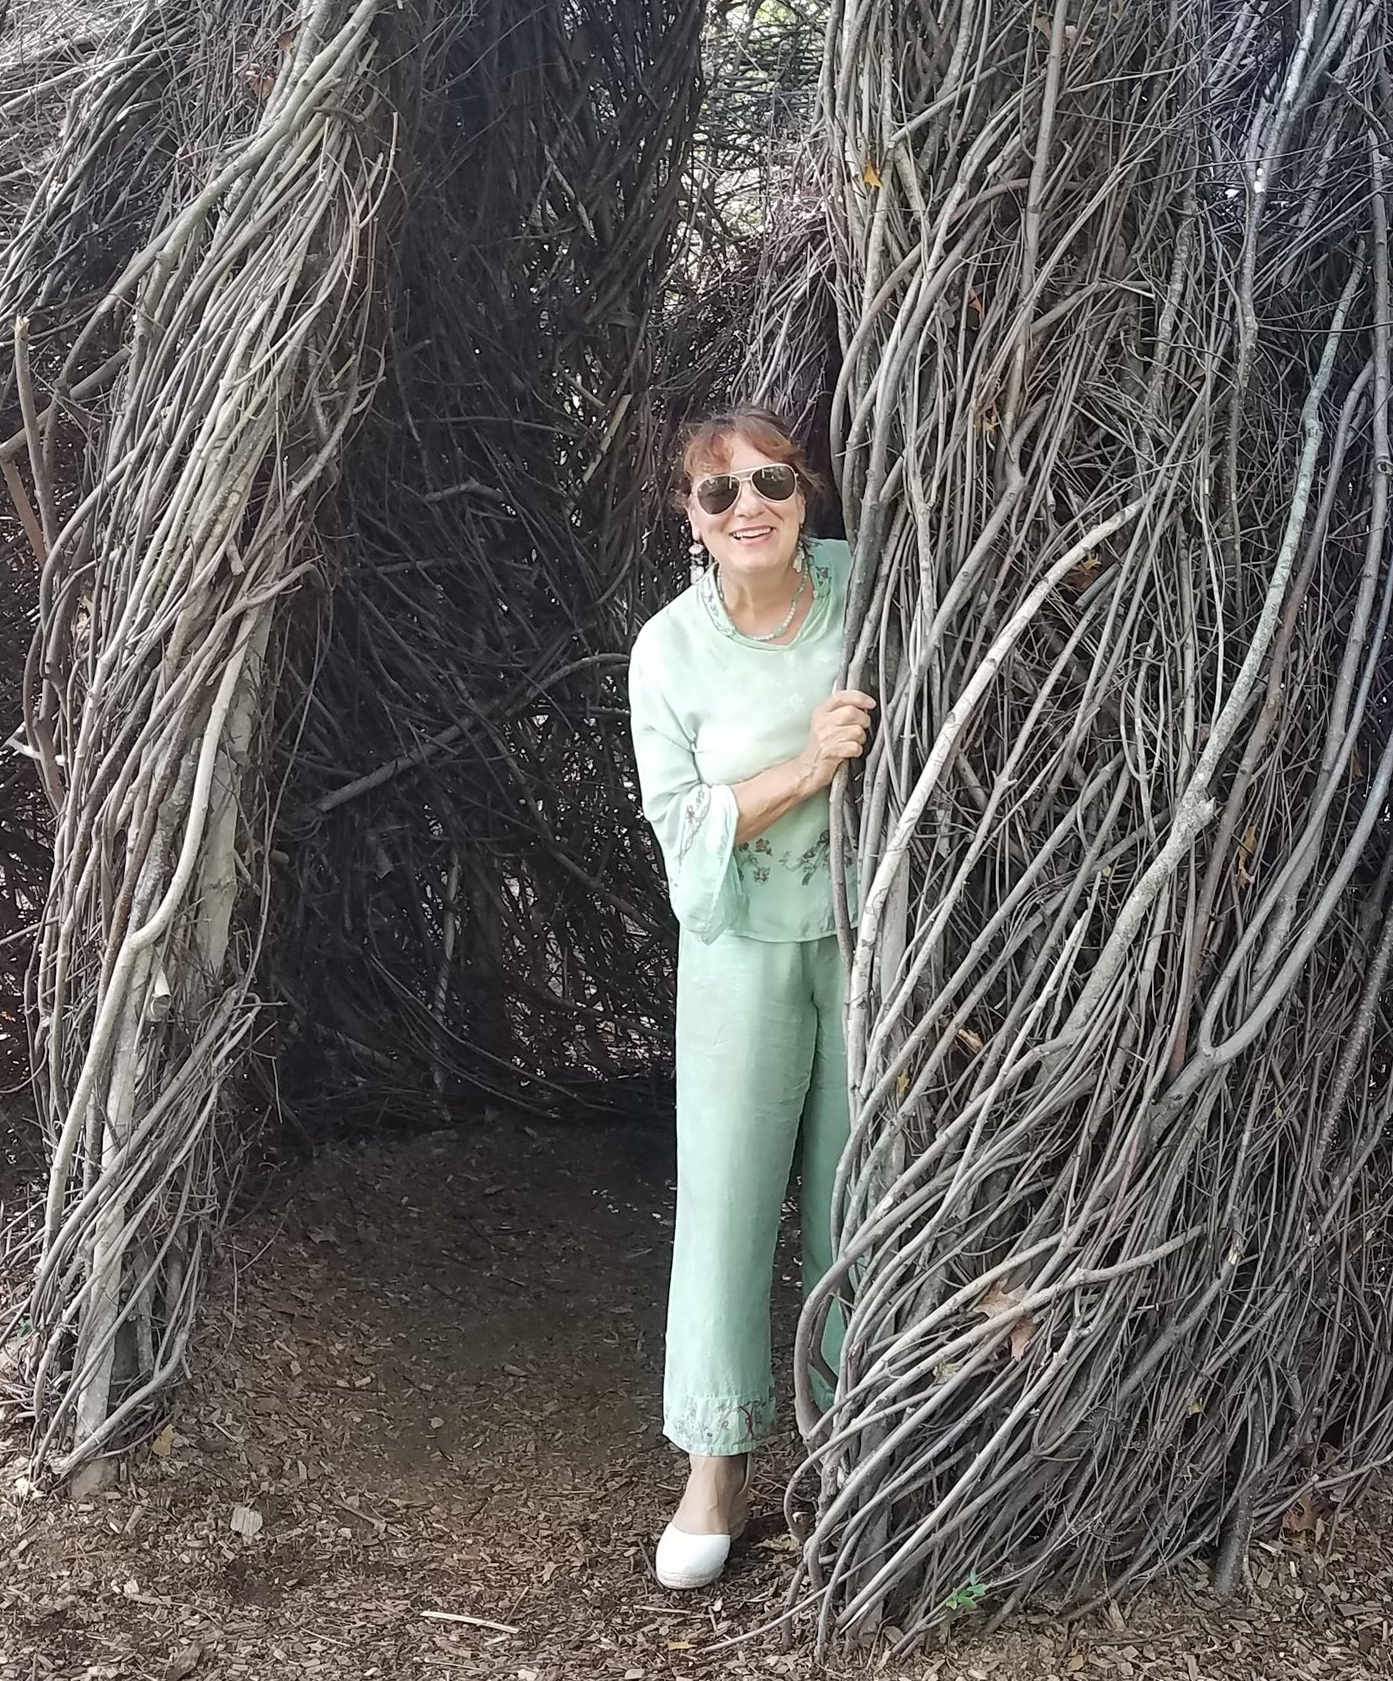 Dr Roxie inside the Botanical Garden installation by Patrick Dougherty.